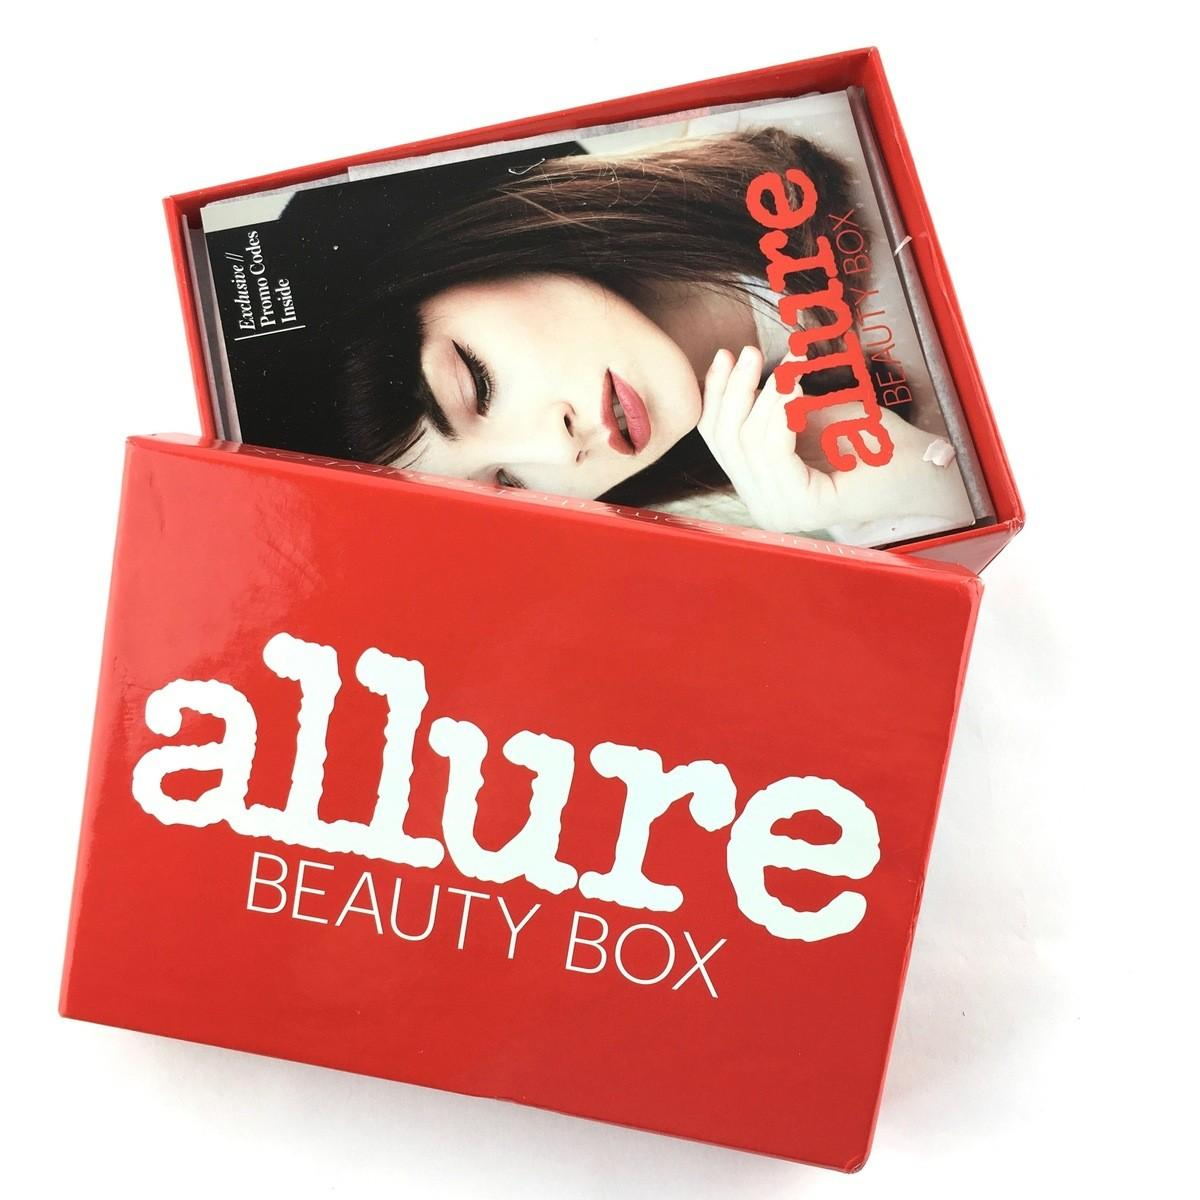 Allure Beauty Box Review – August 2017